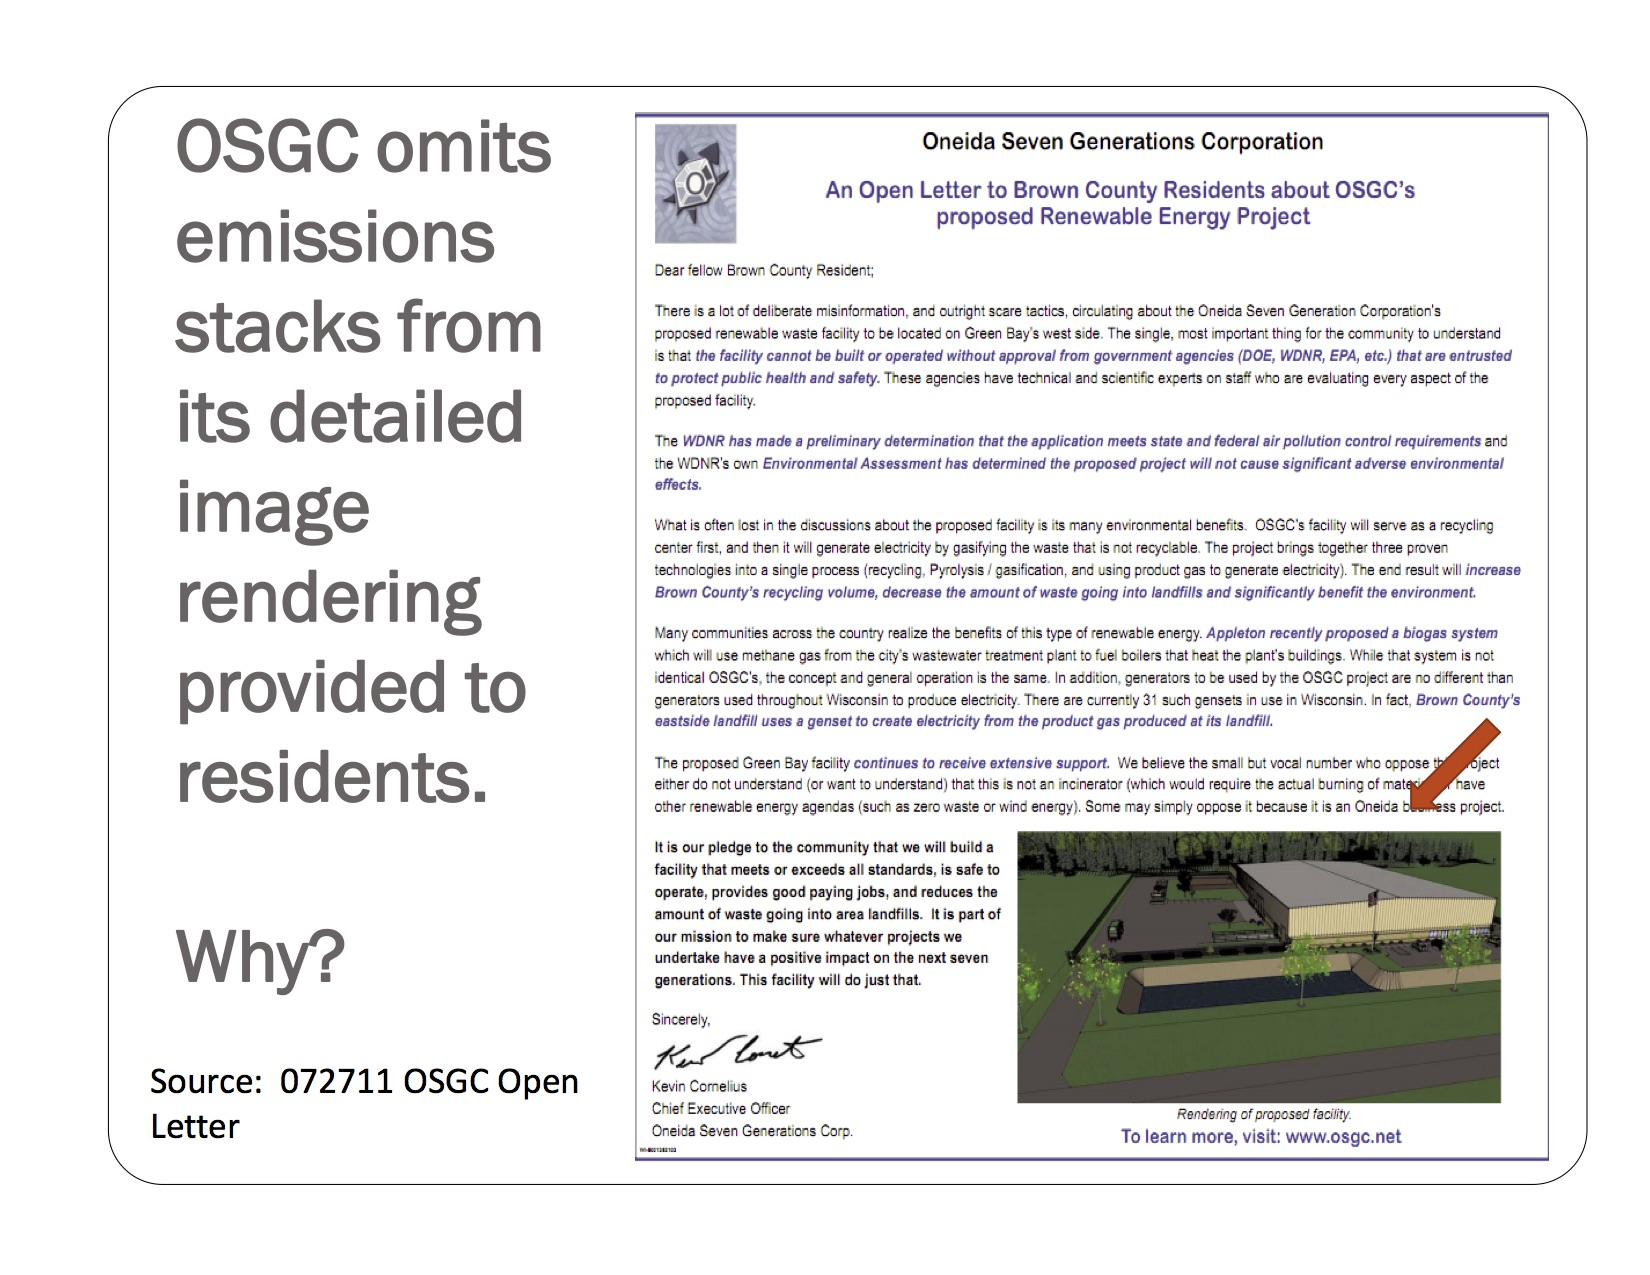 2012-04-18 IFBC re OSGC Trash Incinerator 4